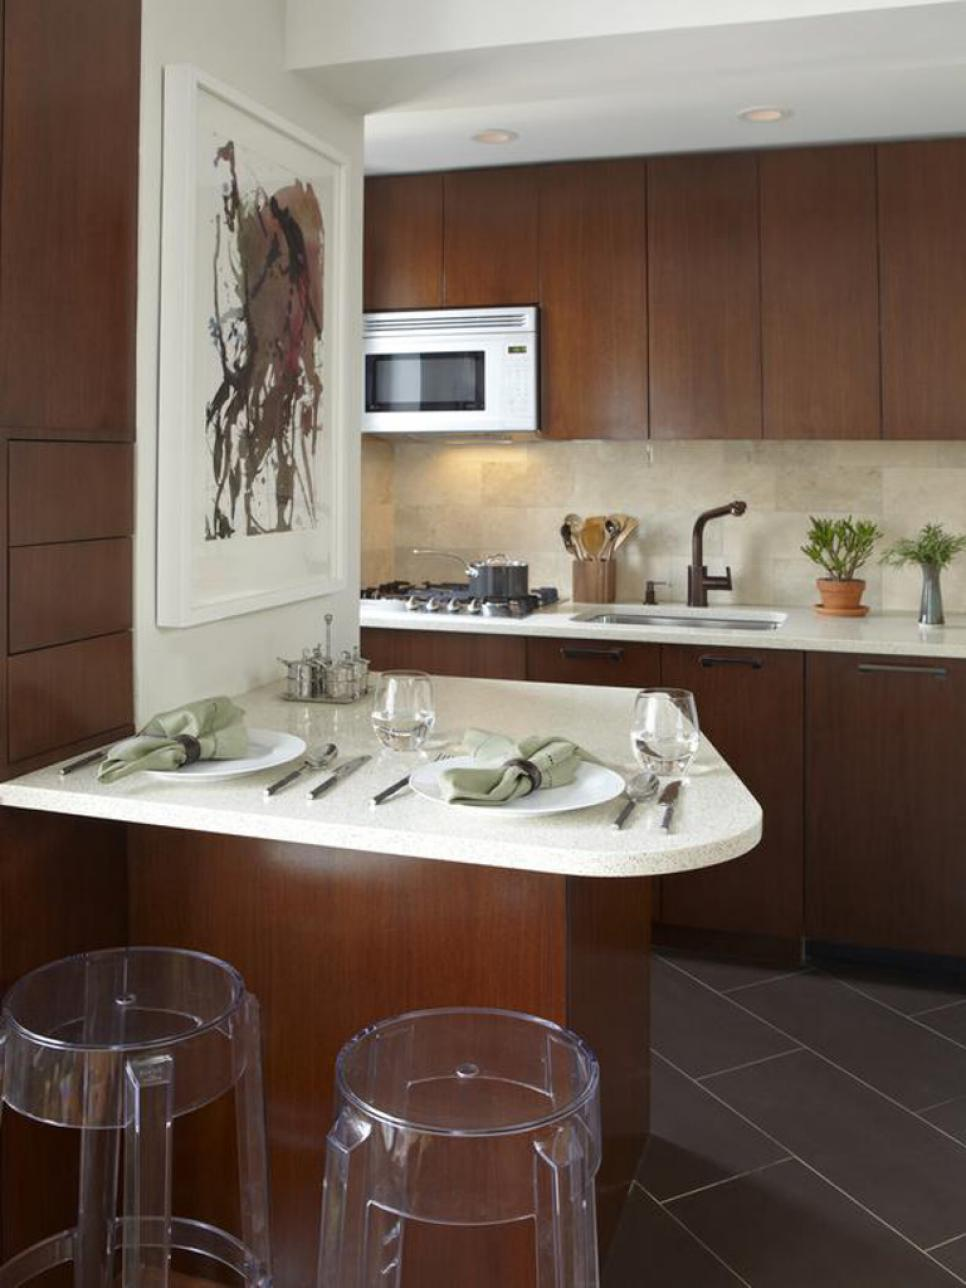 small kitchen ideas from outdated to sophisticated CULIILW